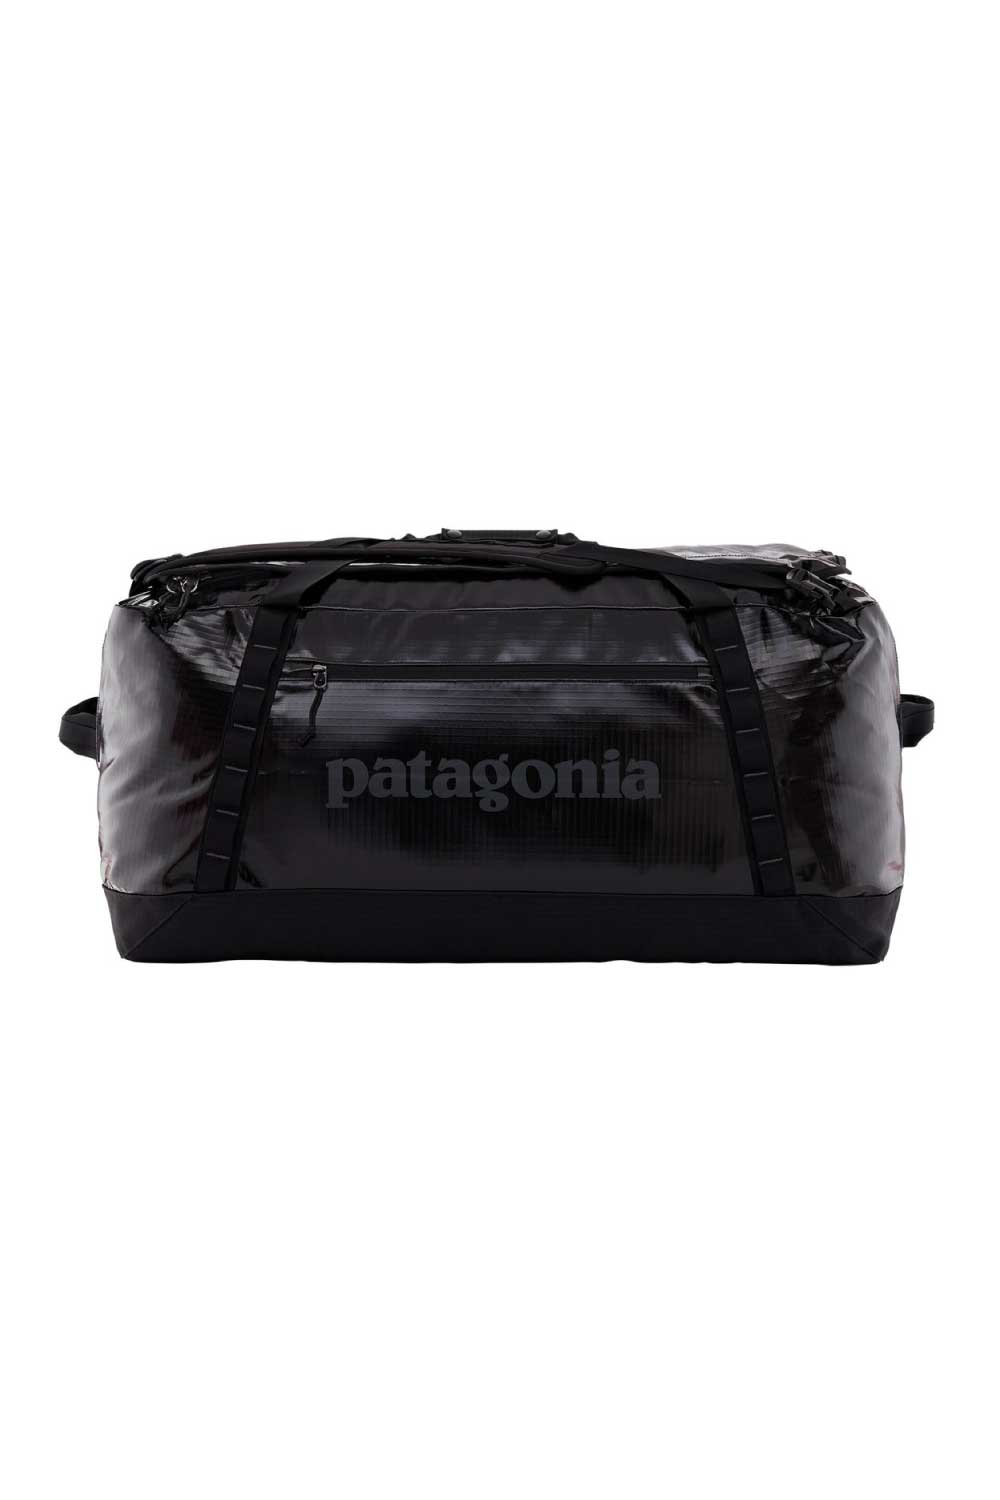 Patagonia Black Hole Black Duffel Bag 100L